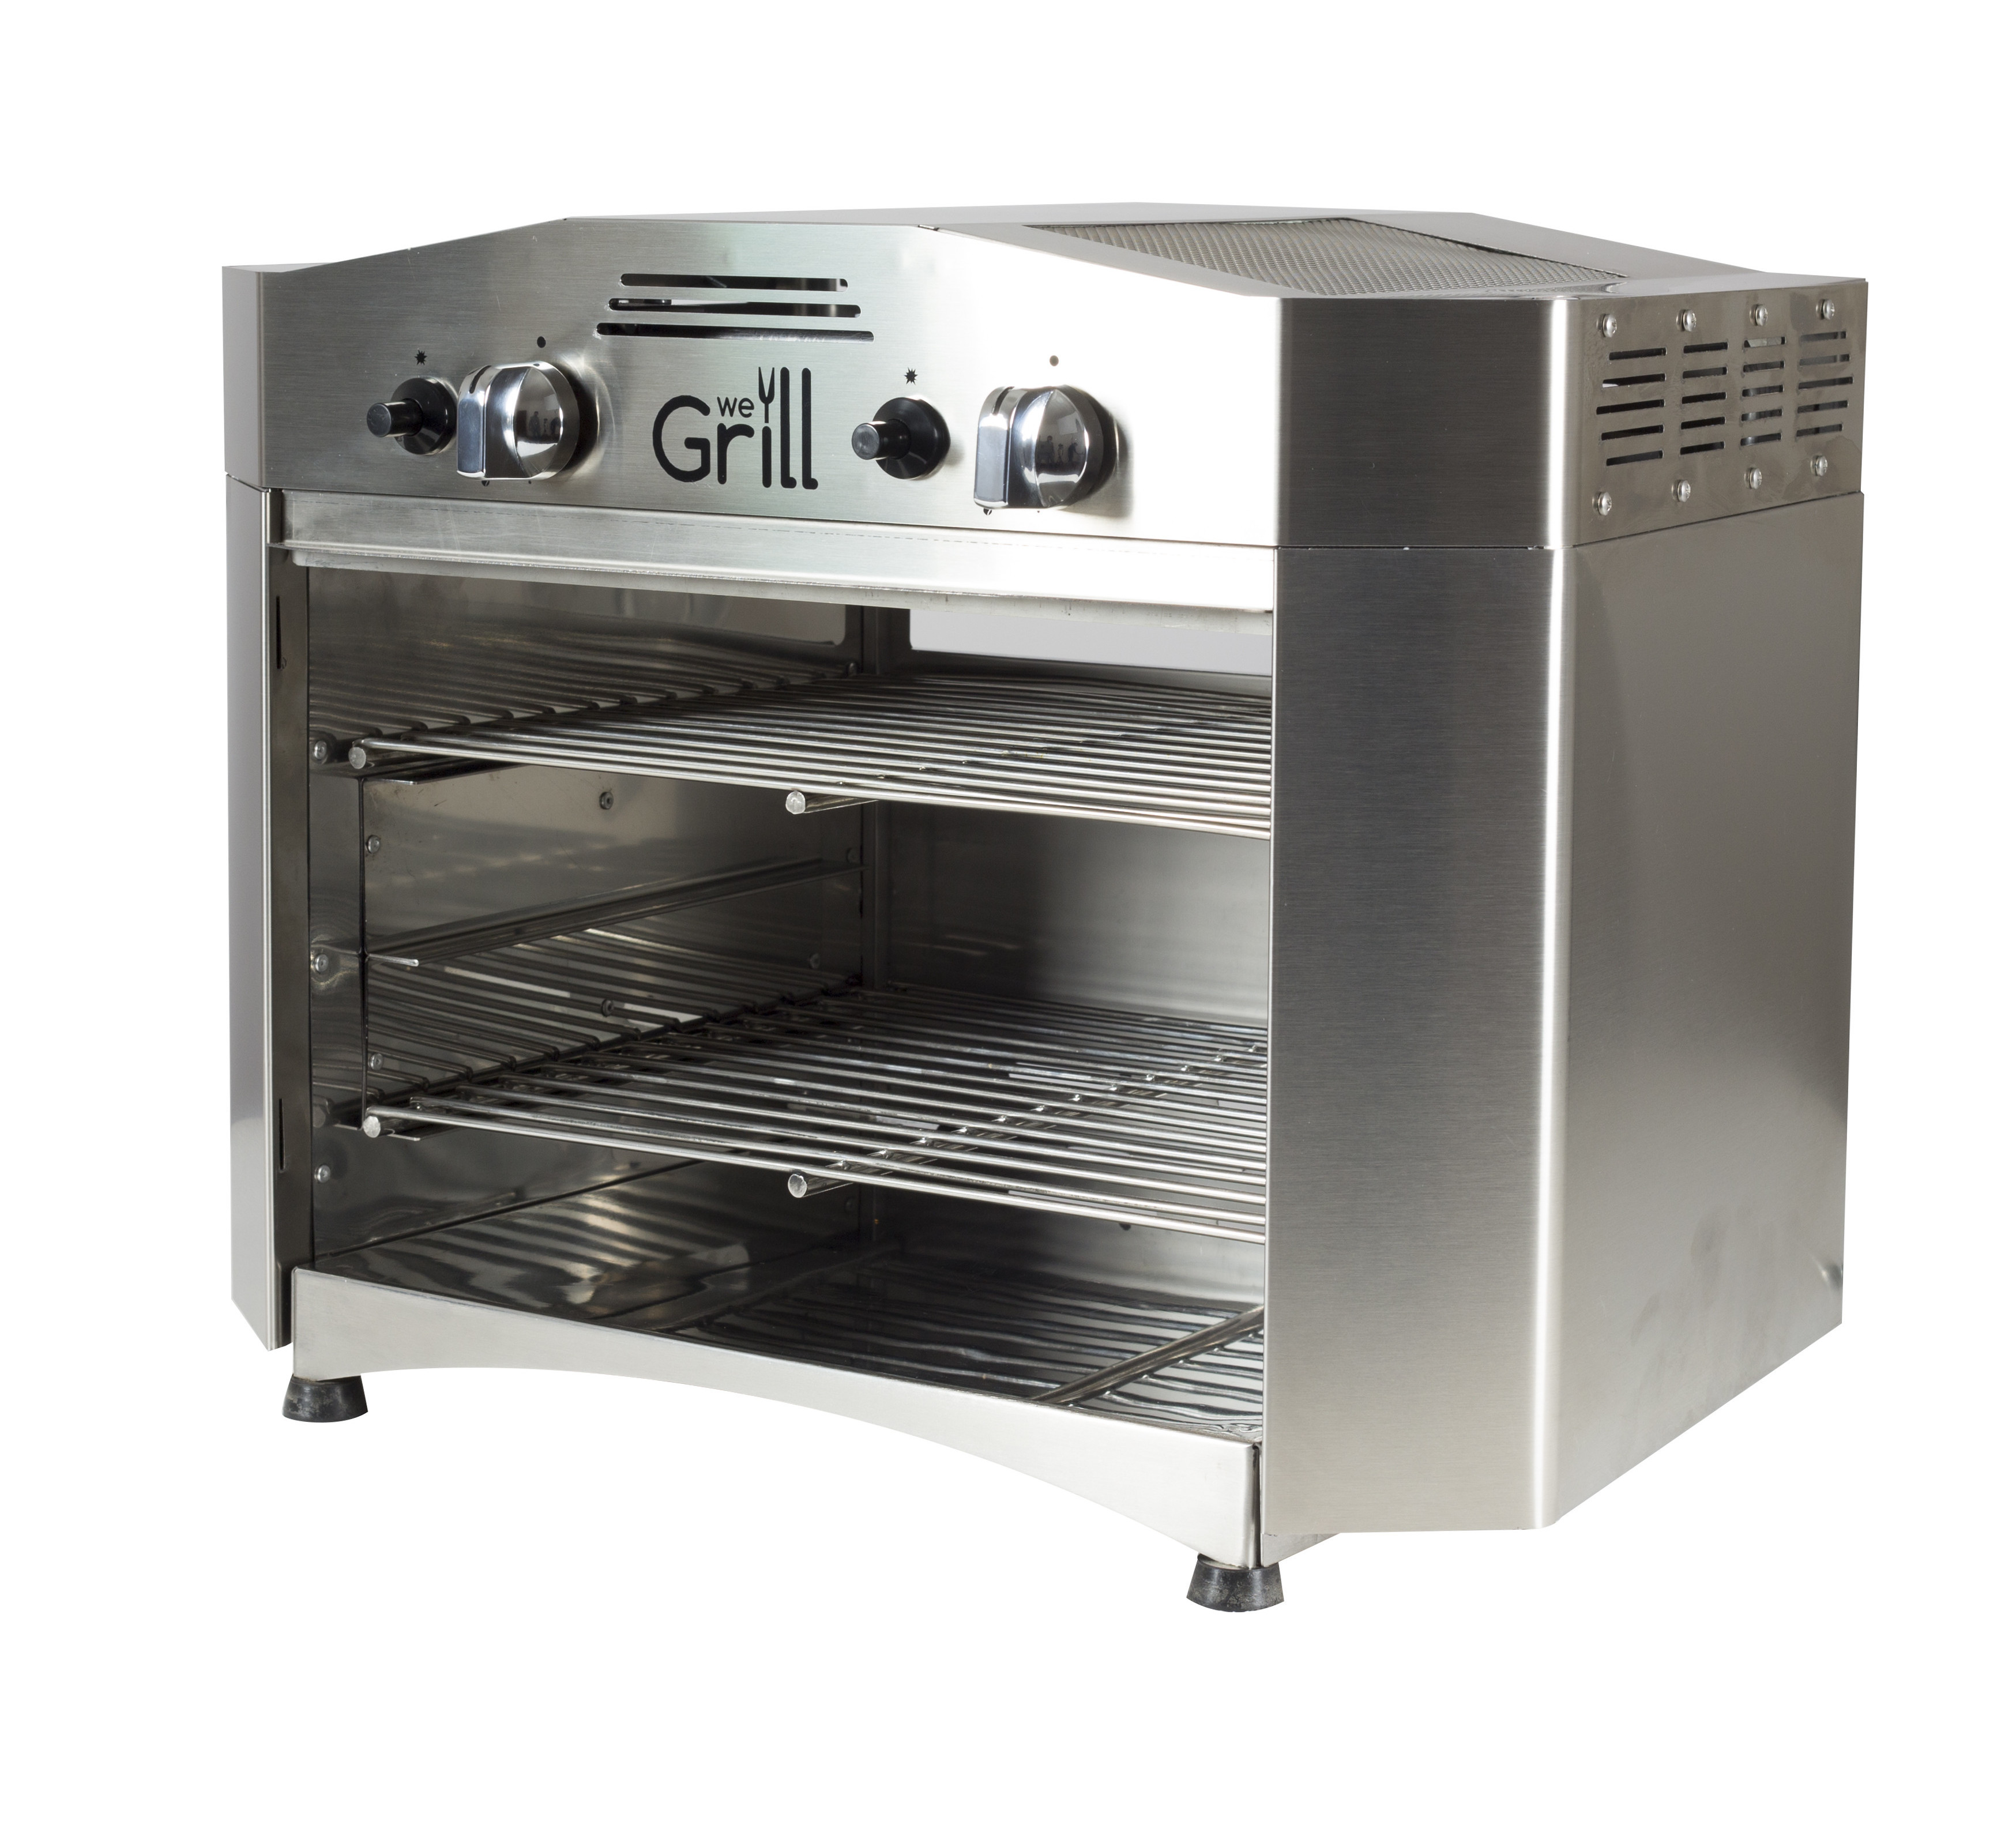 WEGRILL_IN__OUT